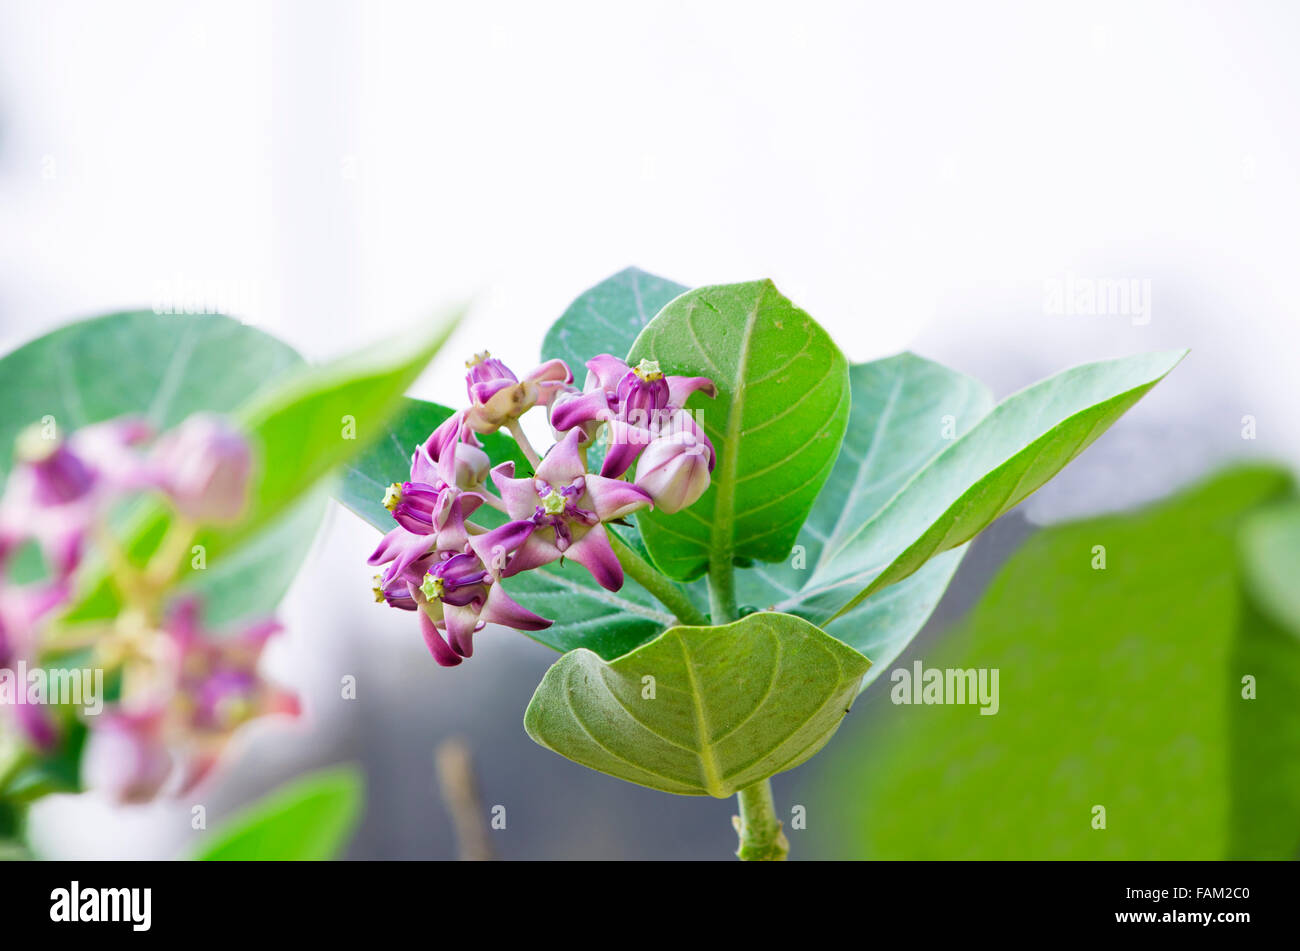 Flowers In India Stock Photos Flowers In India Stock Images Alamy